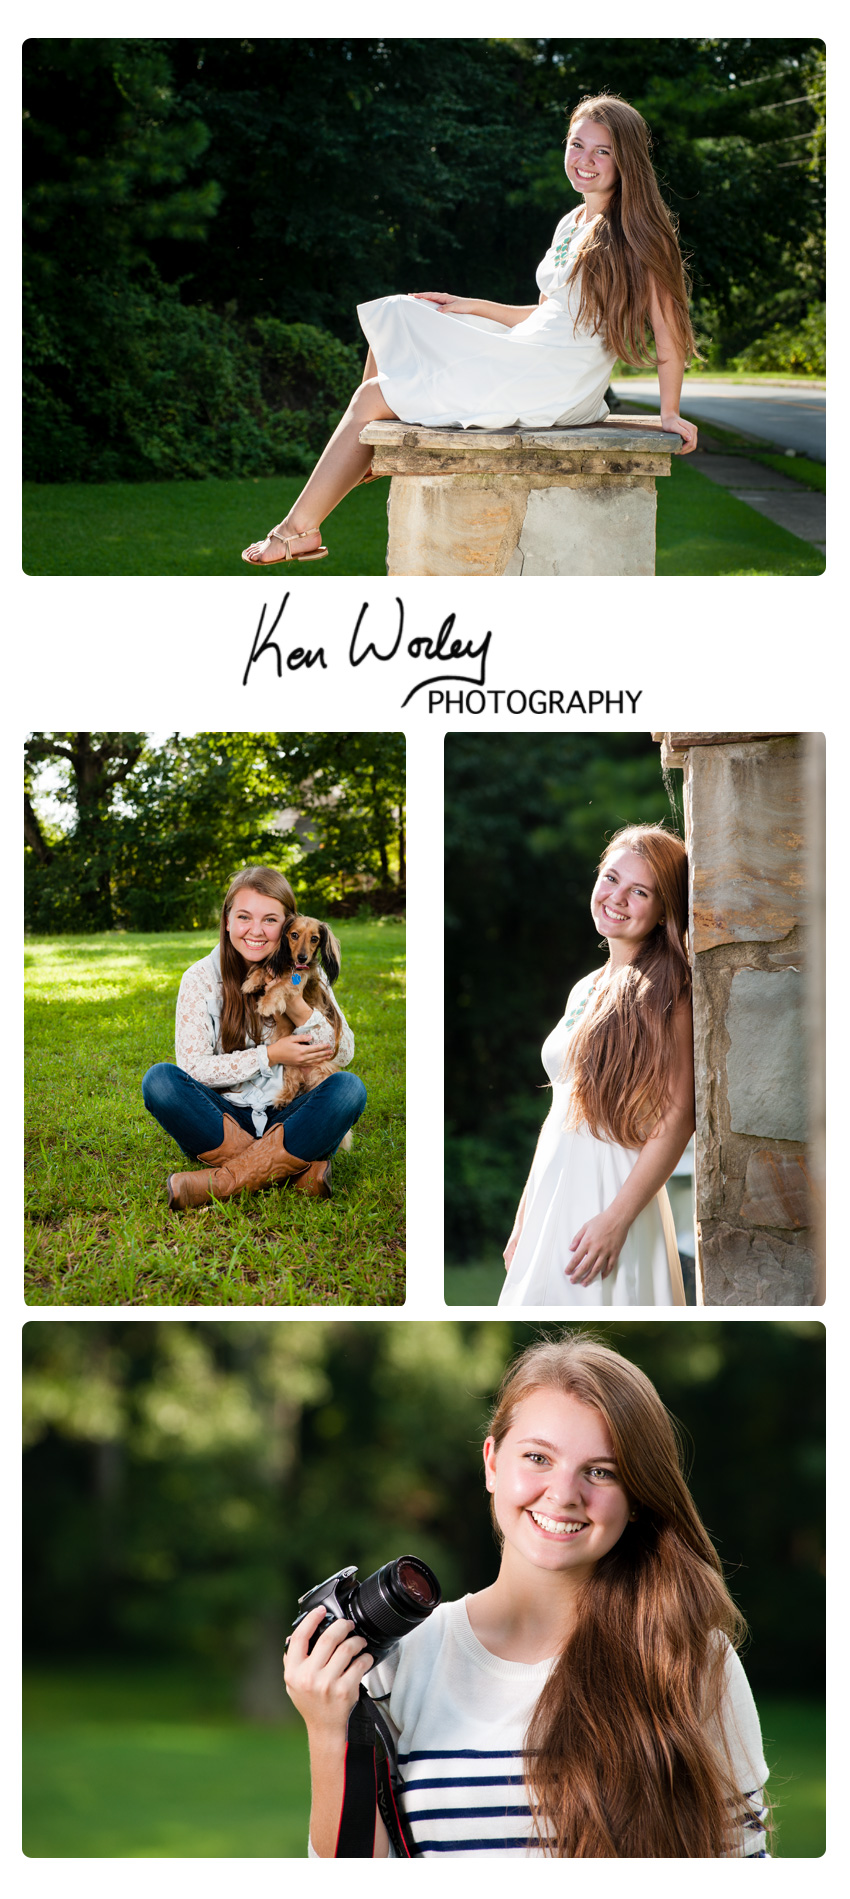 Holly: 2014 Senior!